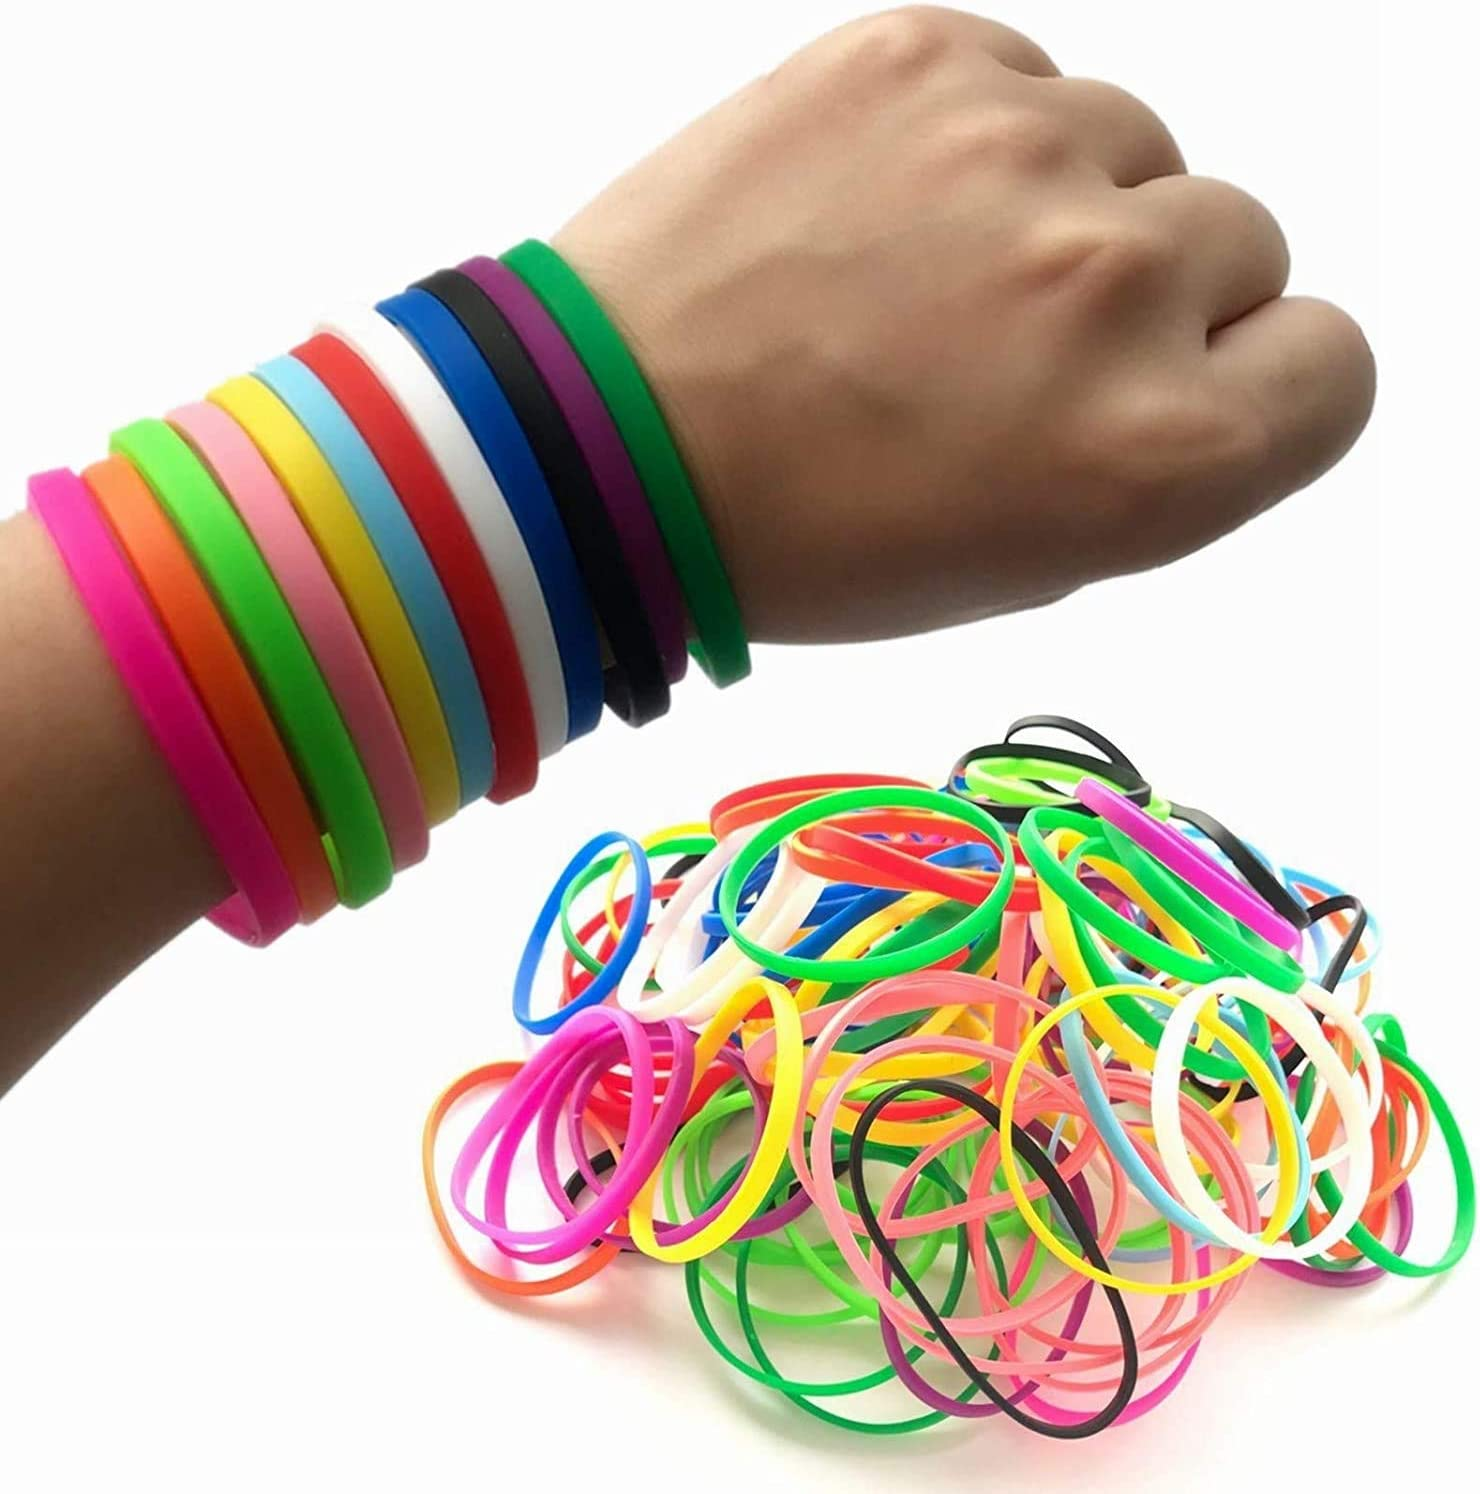 Limited time sale M.best 120 Pieces Rubber Bracelets Silicone S Neon Elastic Jelly Japan Maker New